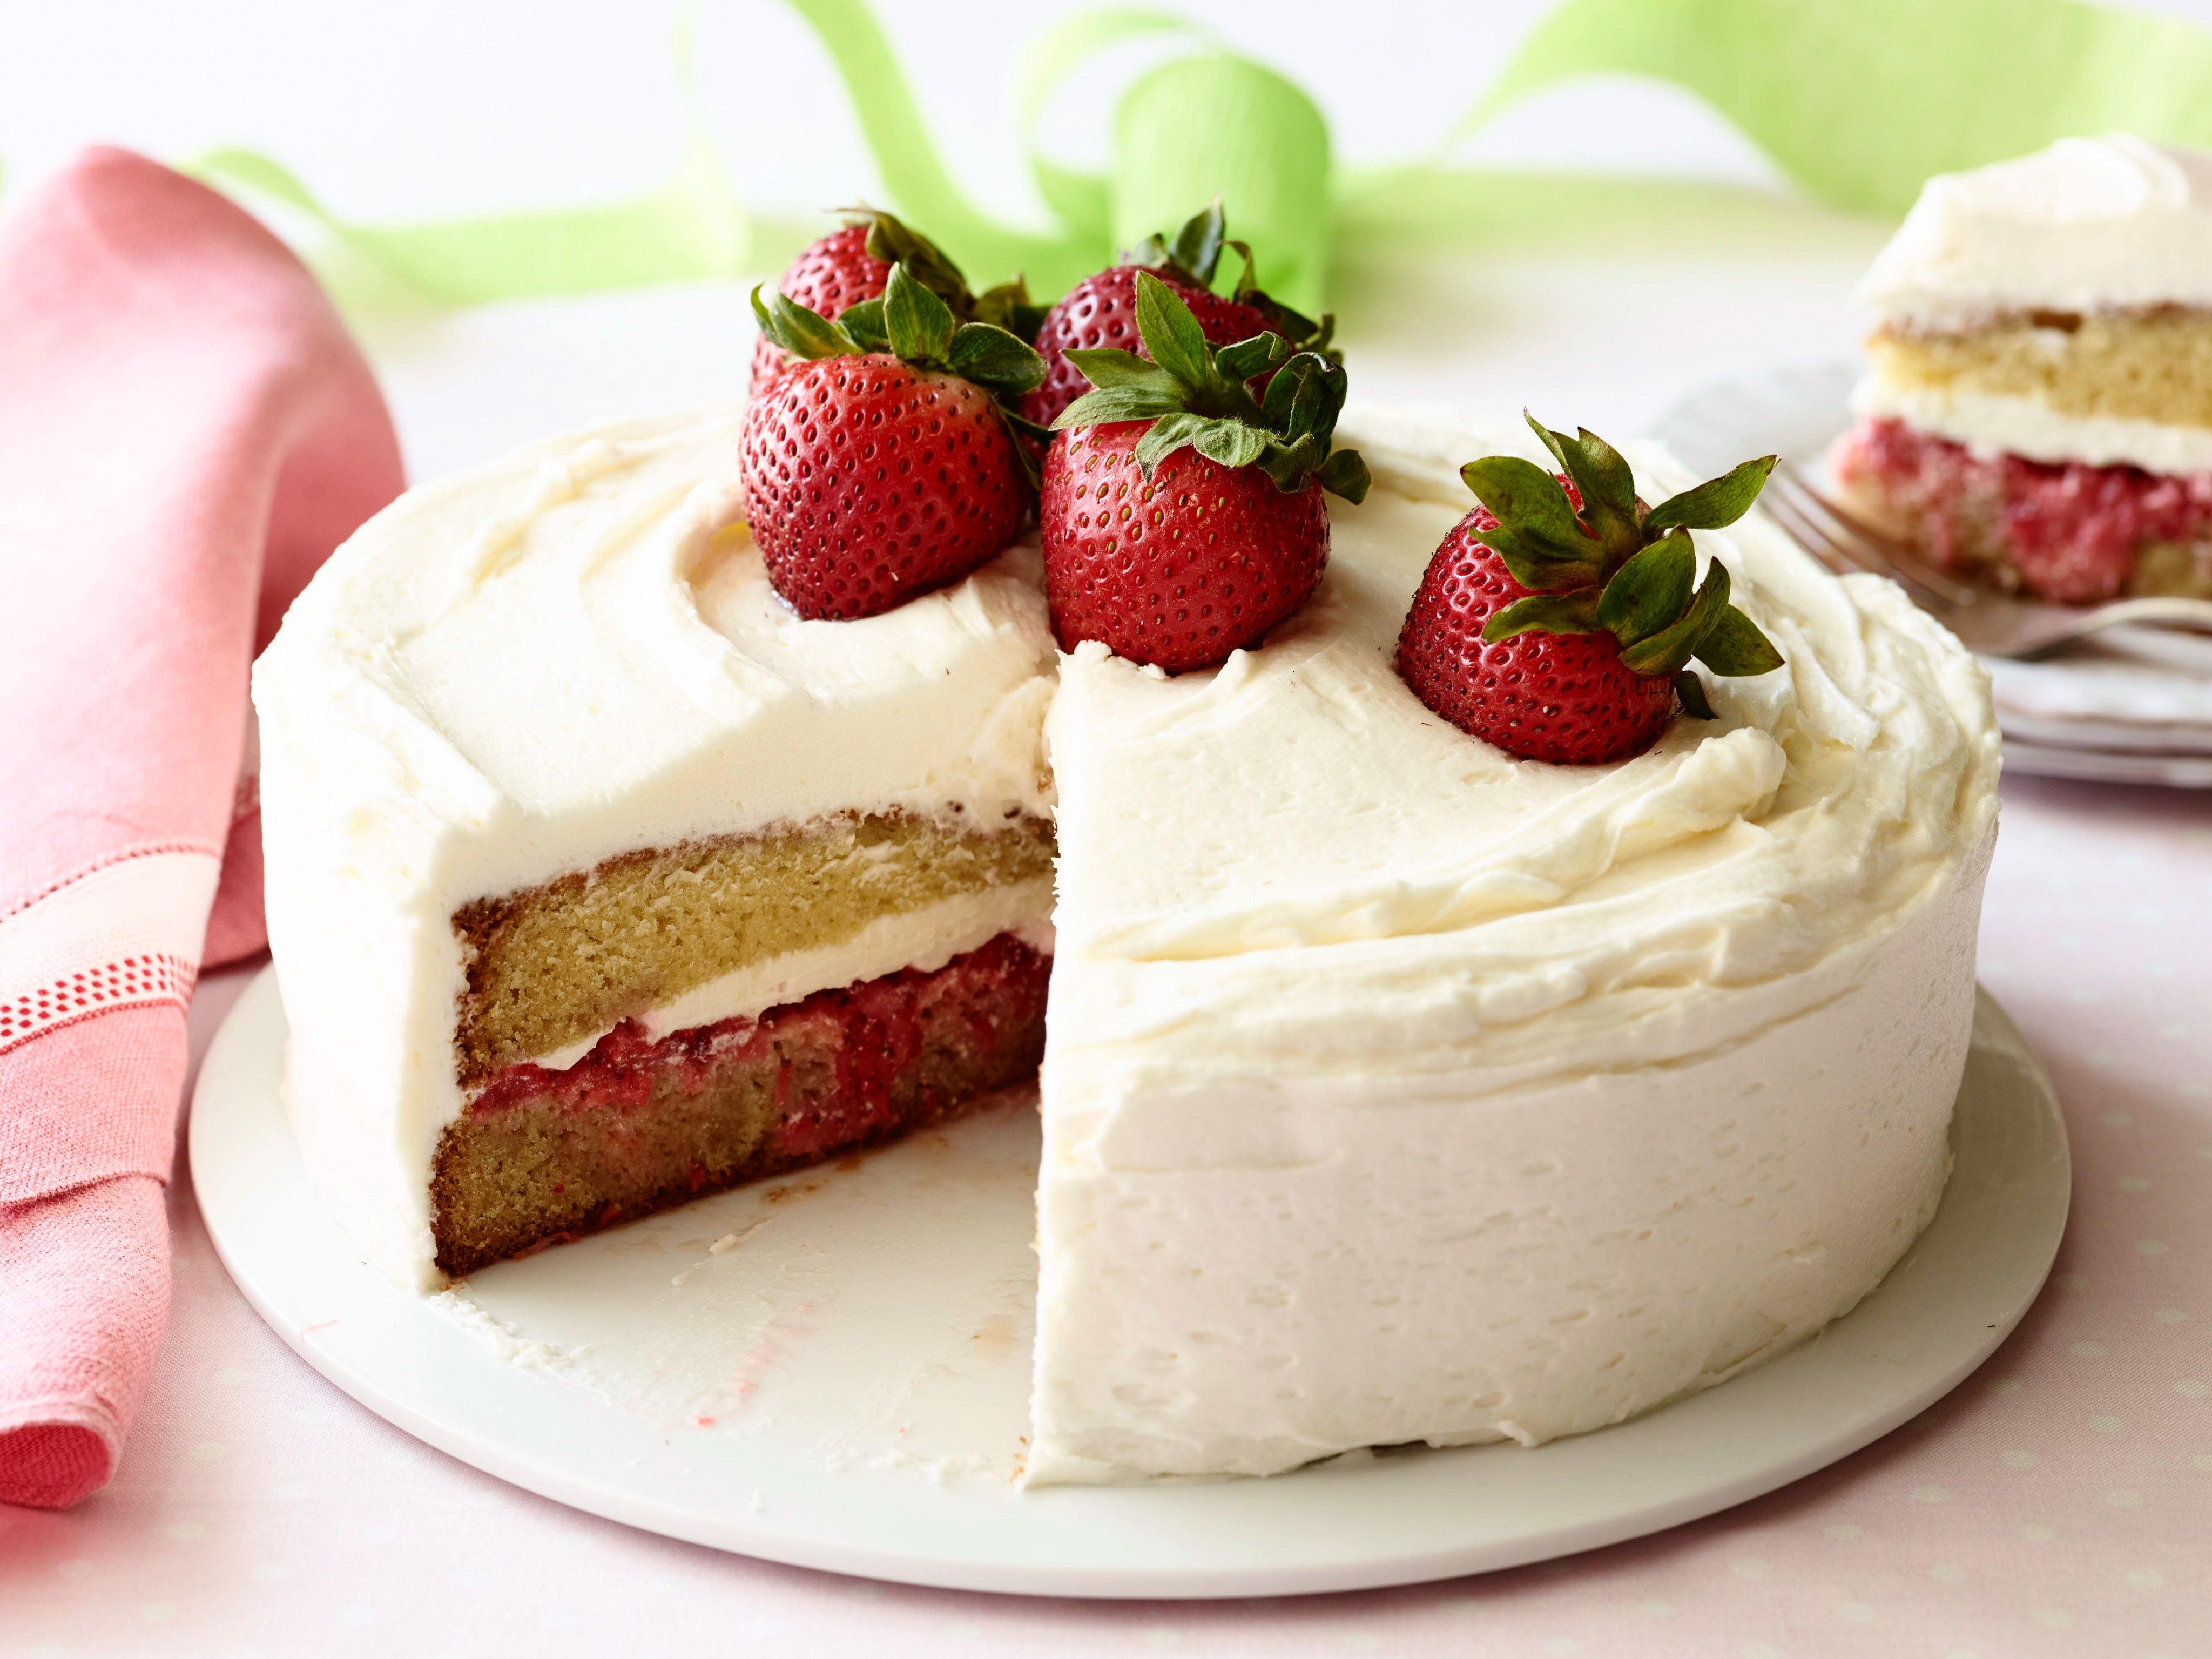 Strawberry shortcake cake recipe cake recipes and foods pioneer woman recipes forumfinder Image collections